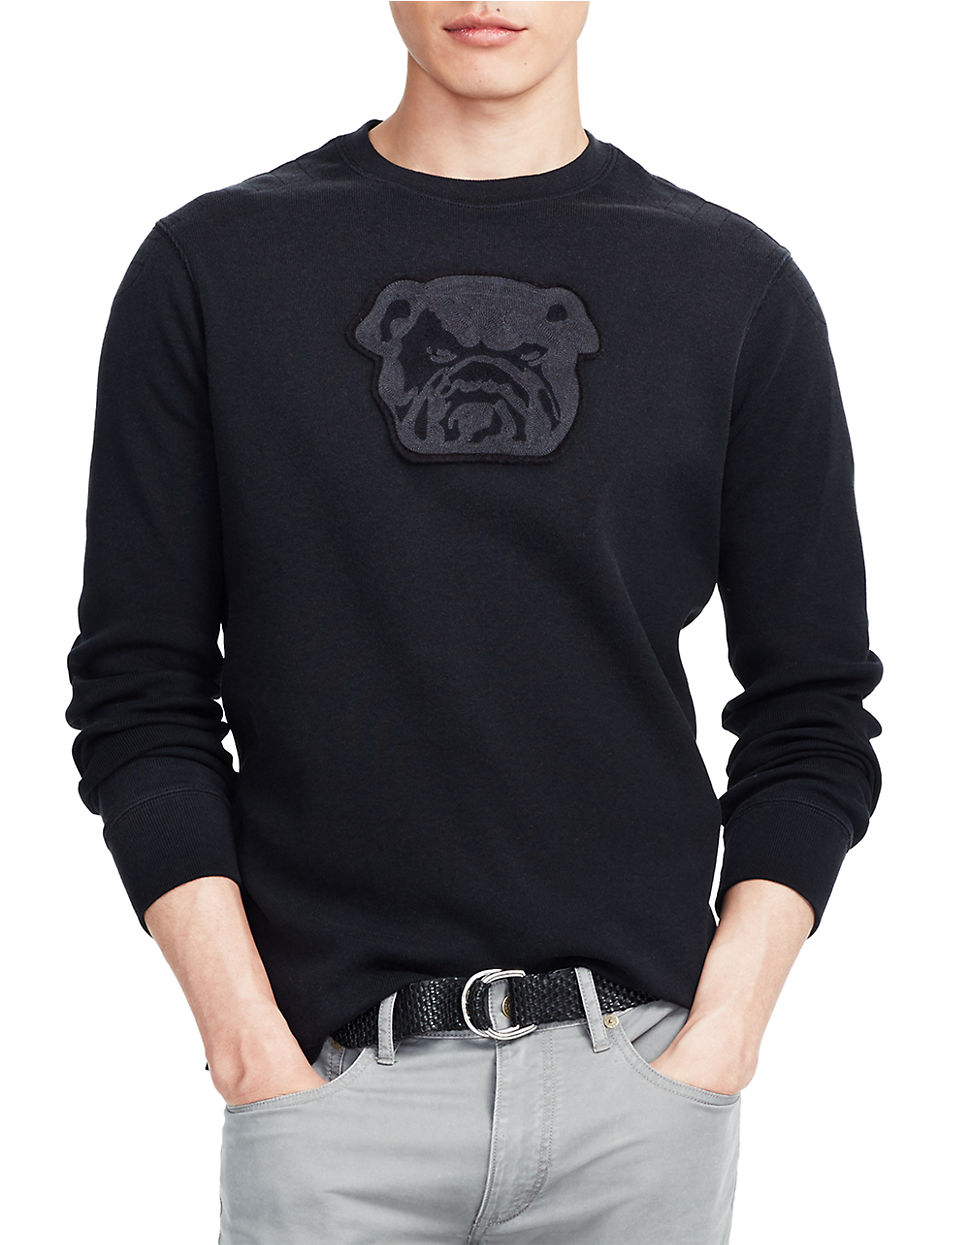 polo ralph lauren bulldog jersey pullover in black for men lyst. Black Bedroom Furniture Sets. Home Design Ideas